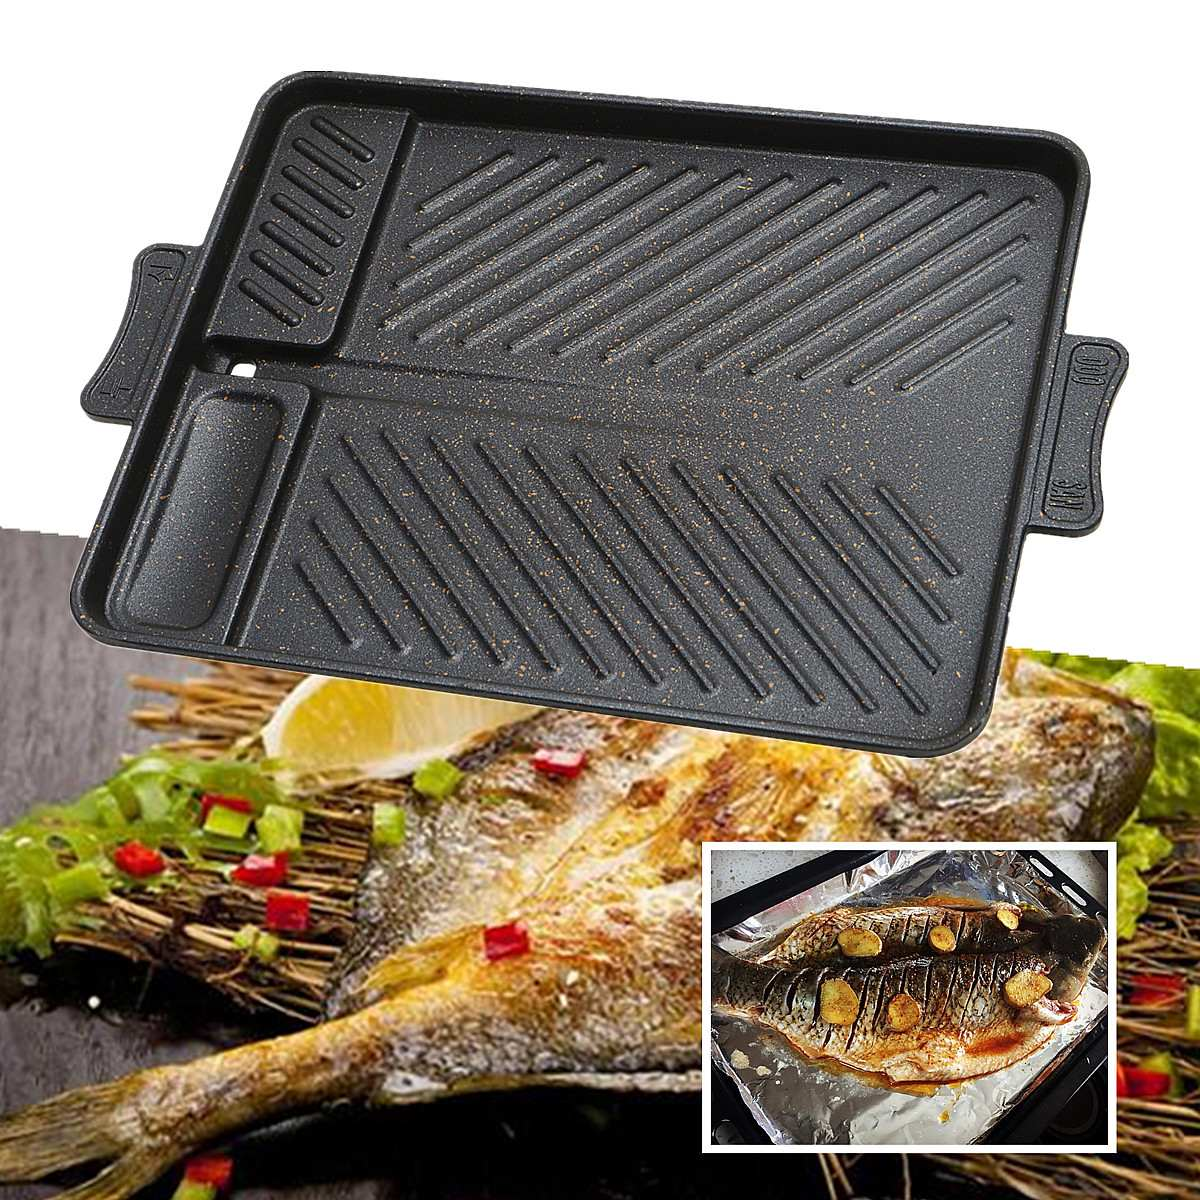 Home Trustful Non Stick Table Top Roasting Tray Baking Pan Barbecue Fried Dish Roaster Grill Twill Pattern Design Heat Evenly For In/outdoor